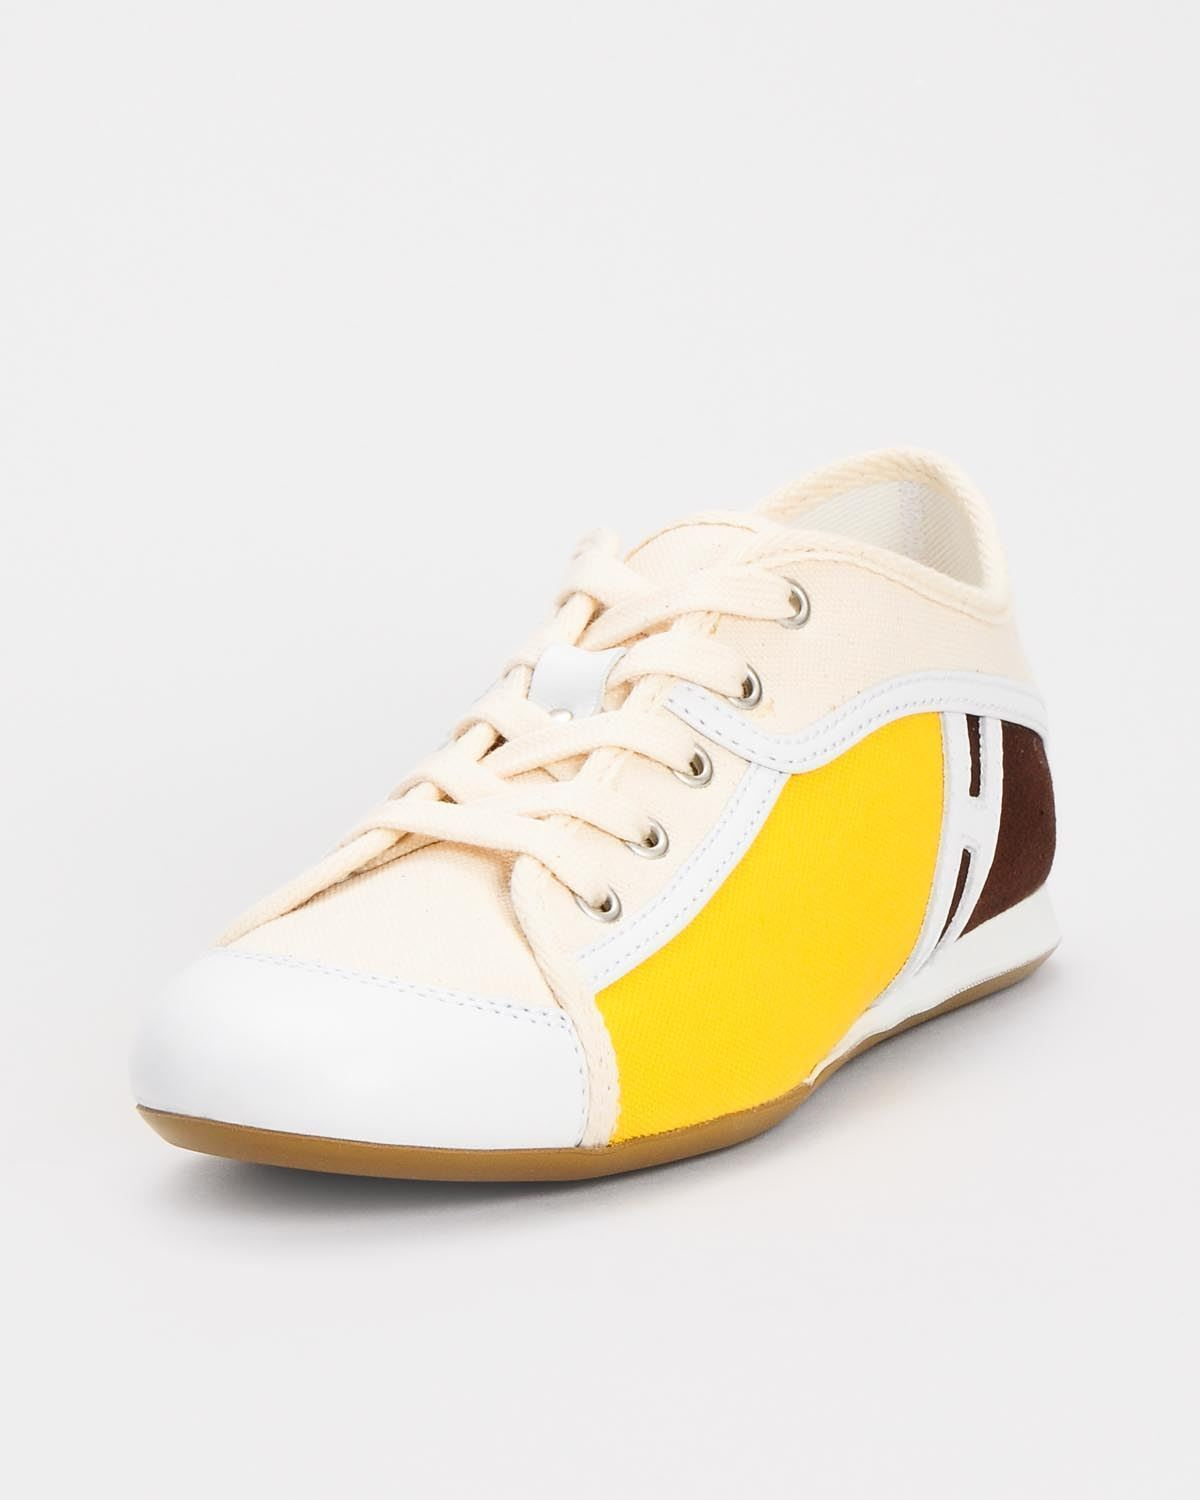 HOGAN OLYMPIA VINTAGE WOMEN'S SNEAKER MADE IN ITALY, SIZE 37 6.5 US. BRAND NEW